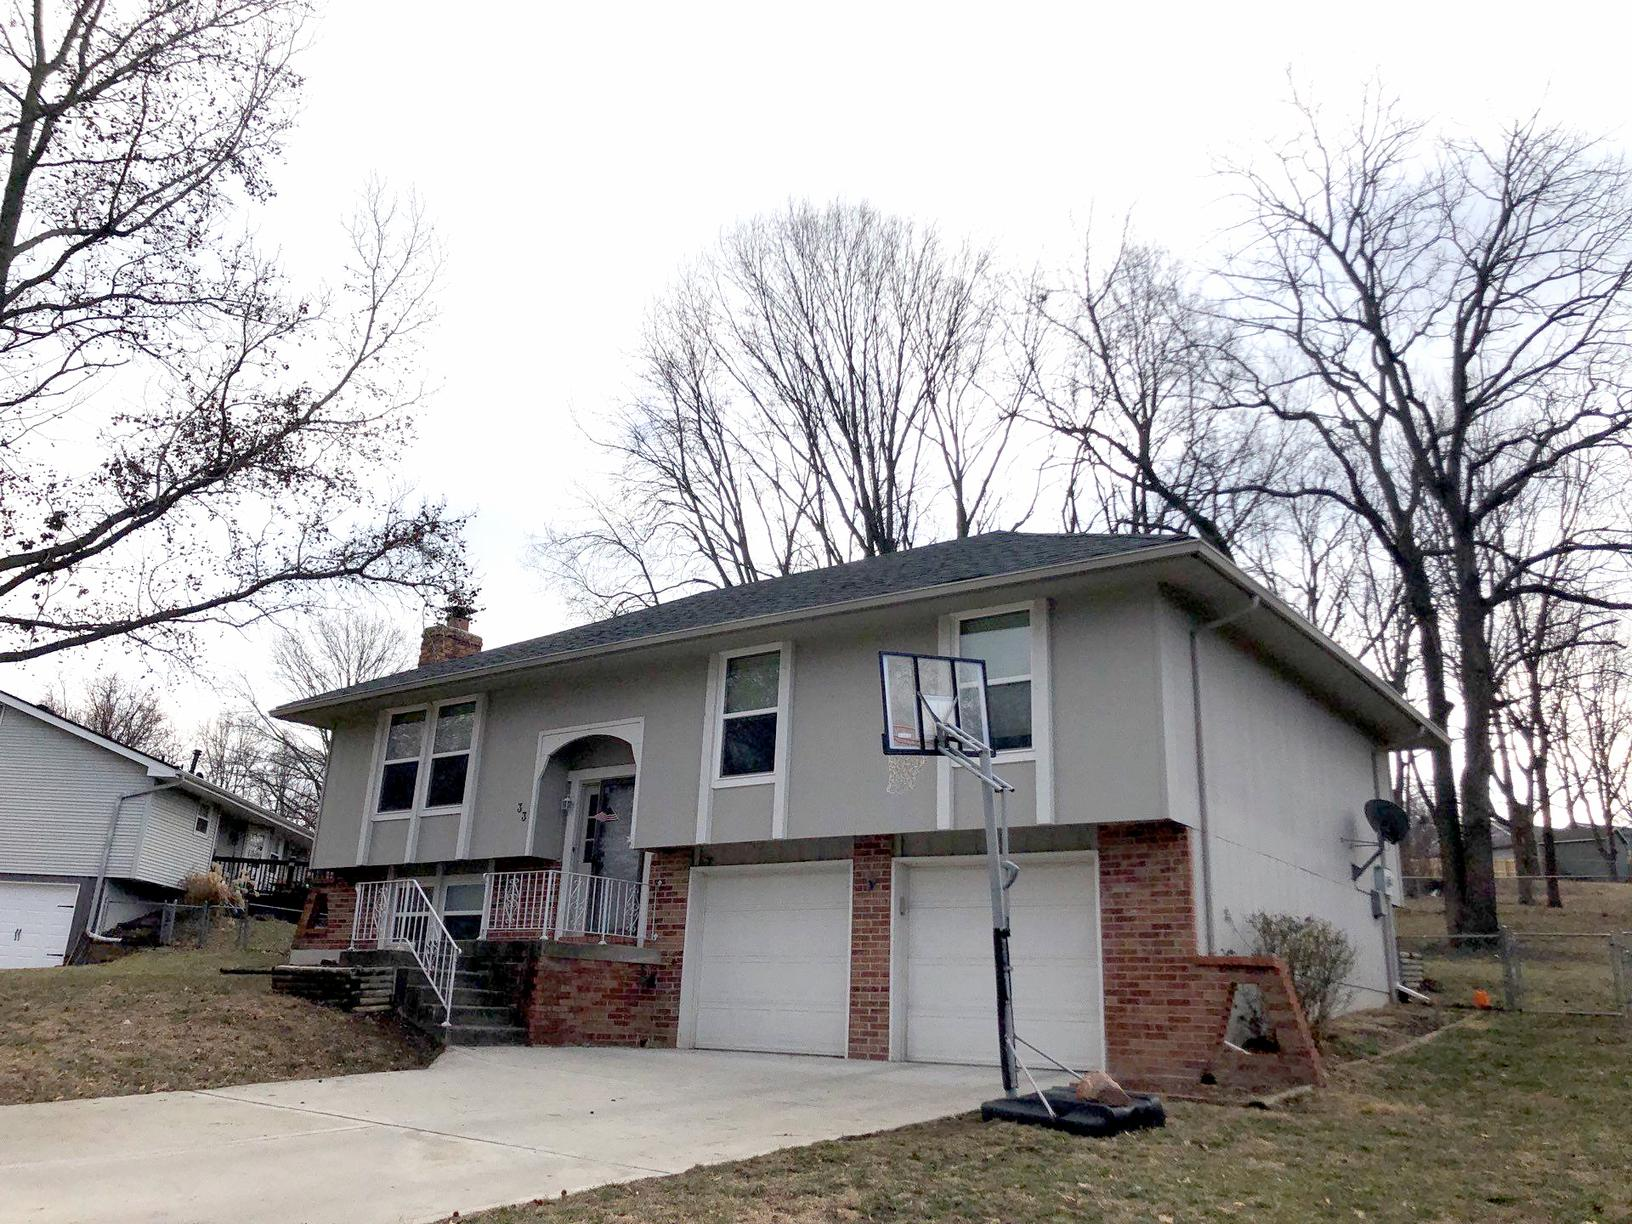 Home in Platte City, MO Gets New Roof